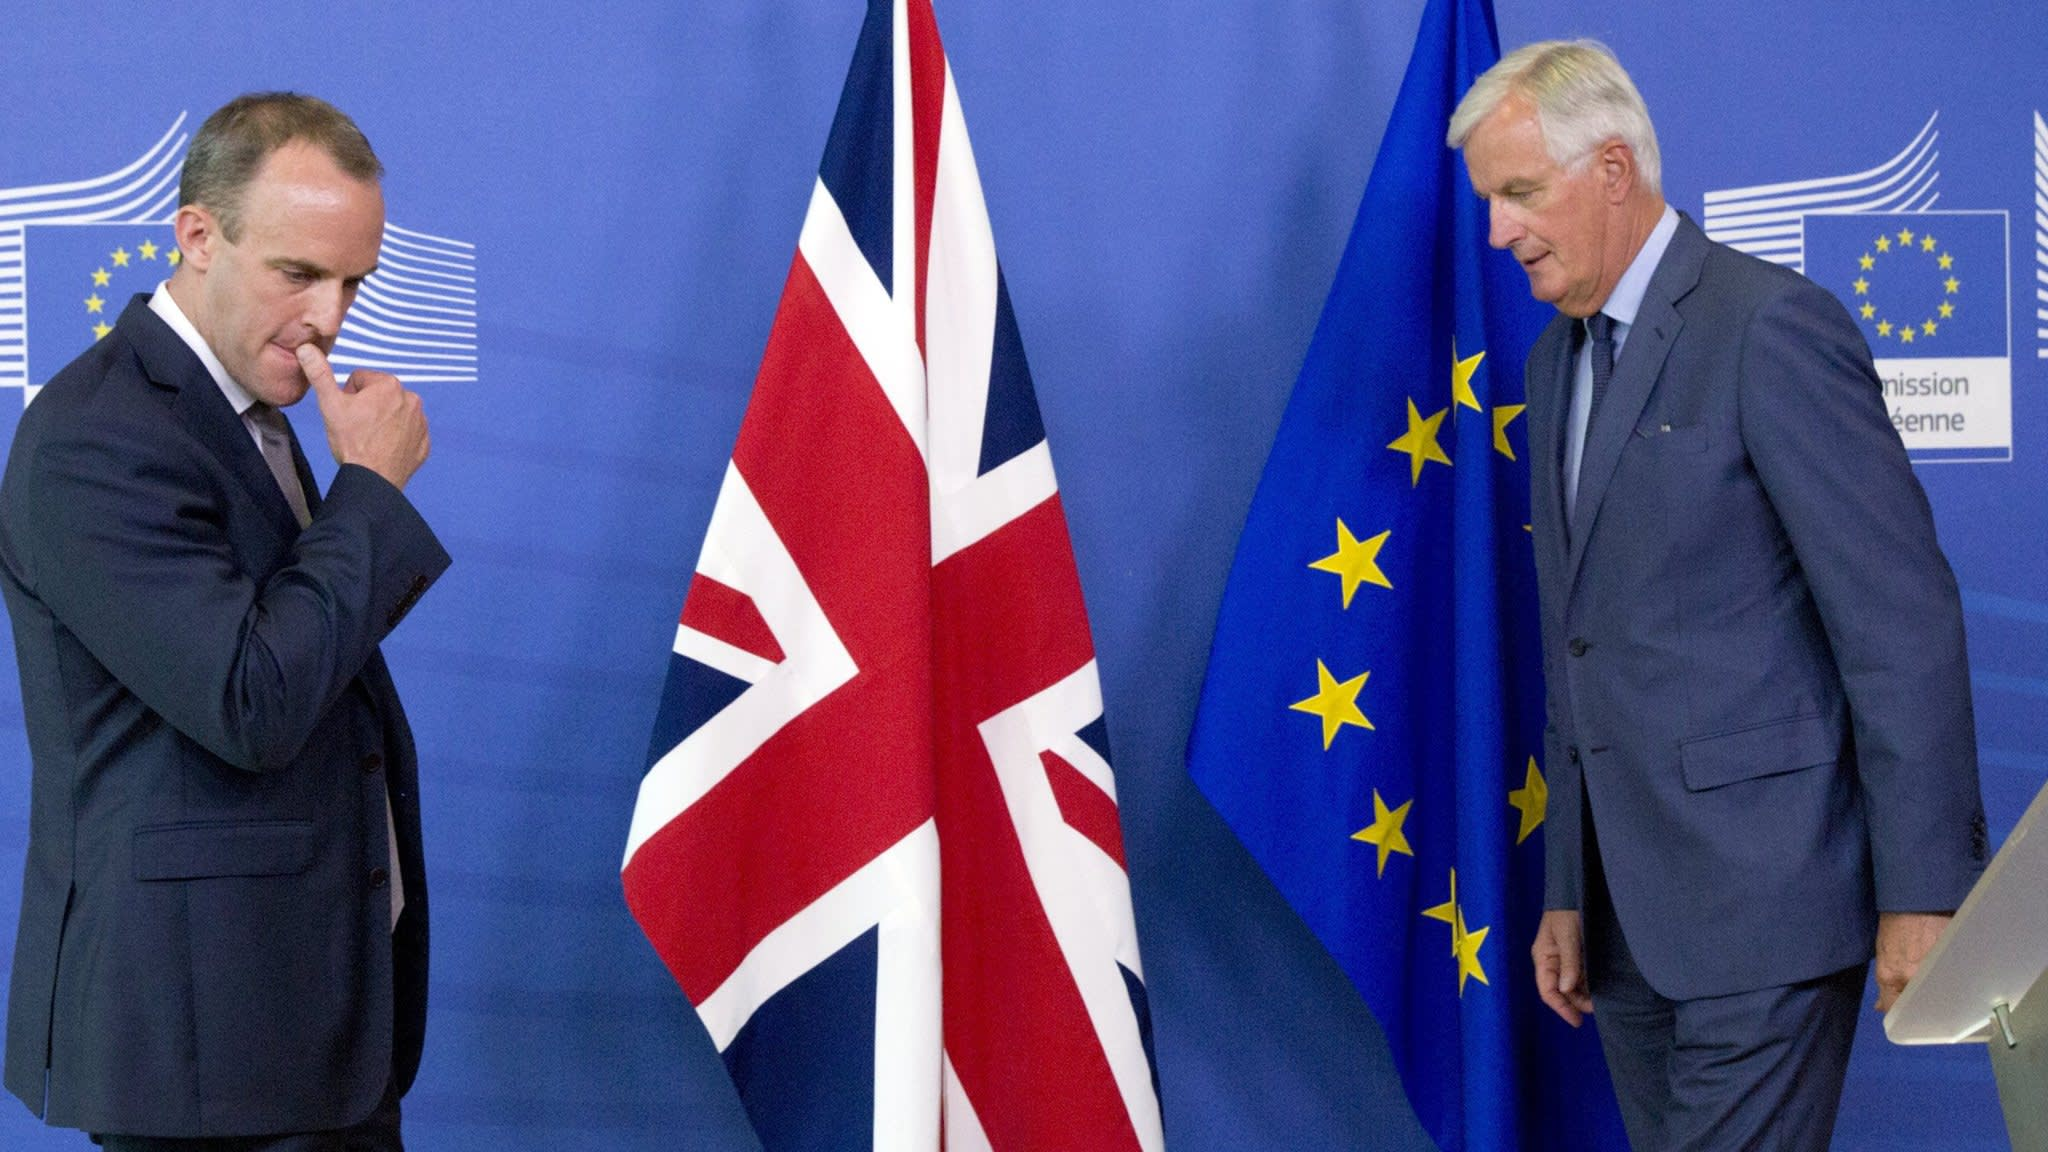 EU ready to give Barnier mandate to close Brexit deal